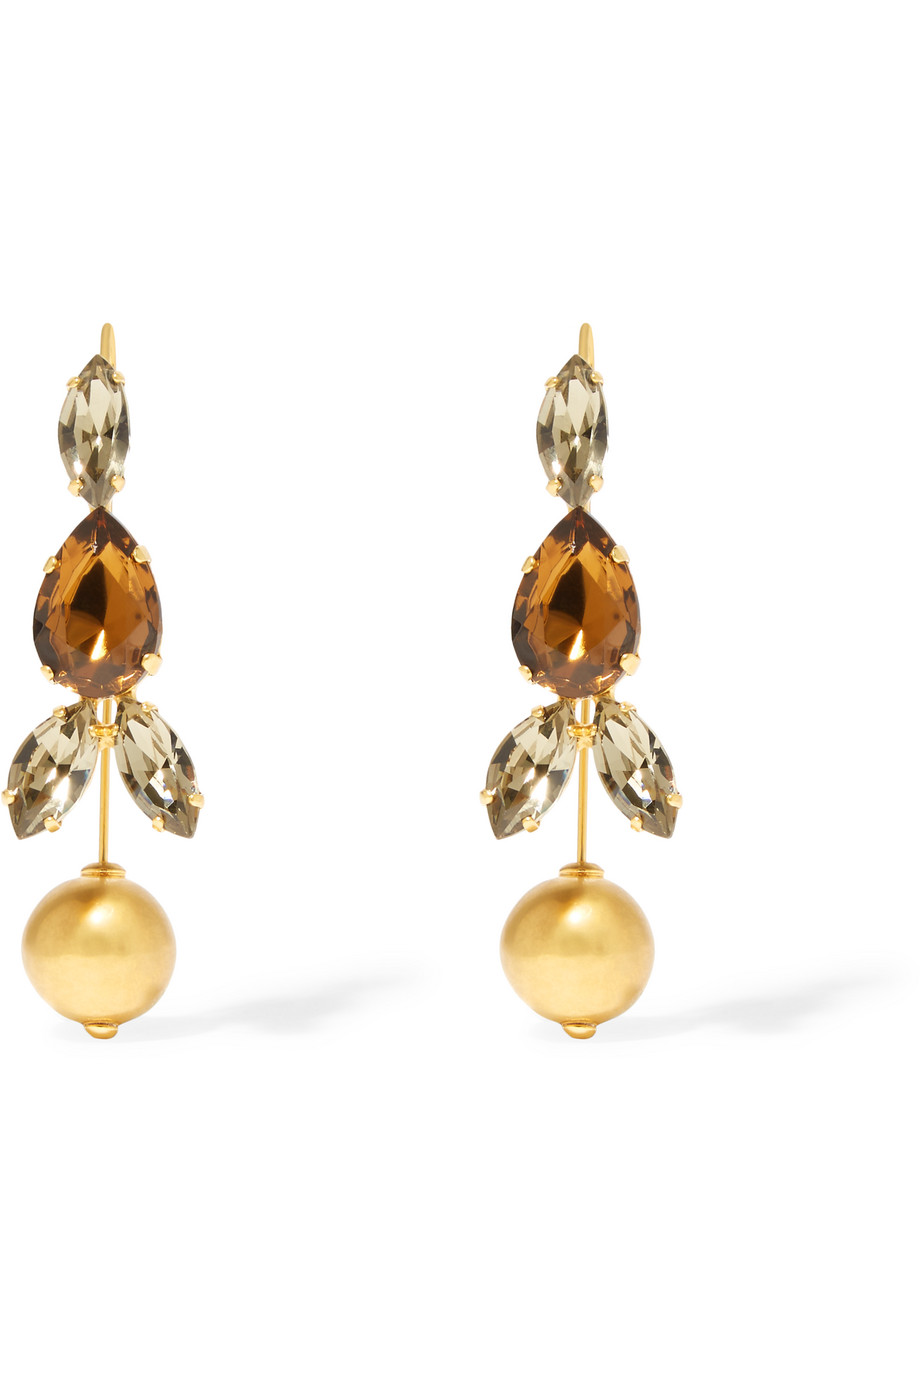 Marni Gold-Plated Crystal Earrings, Gold/Metallic, Women's